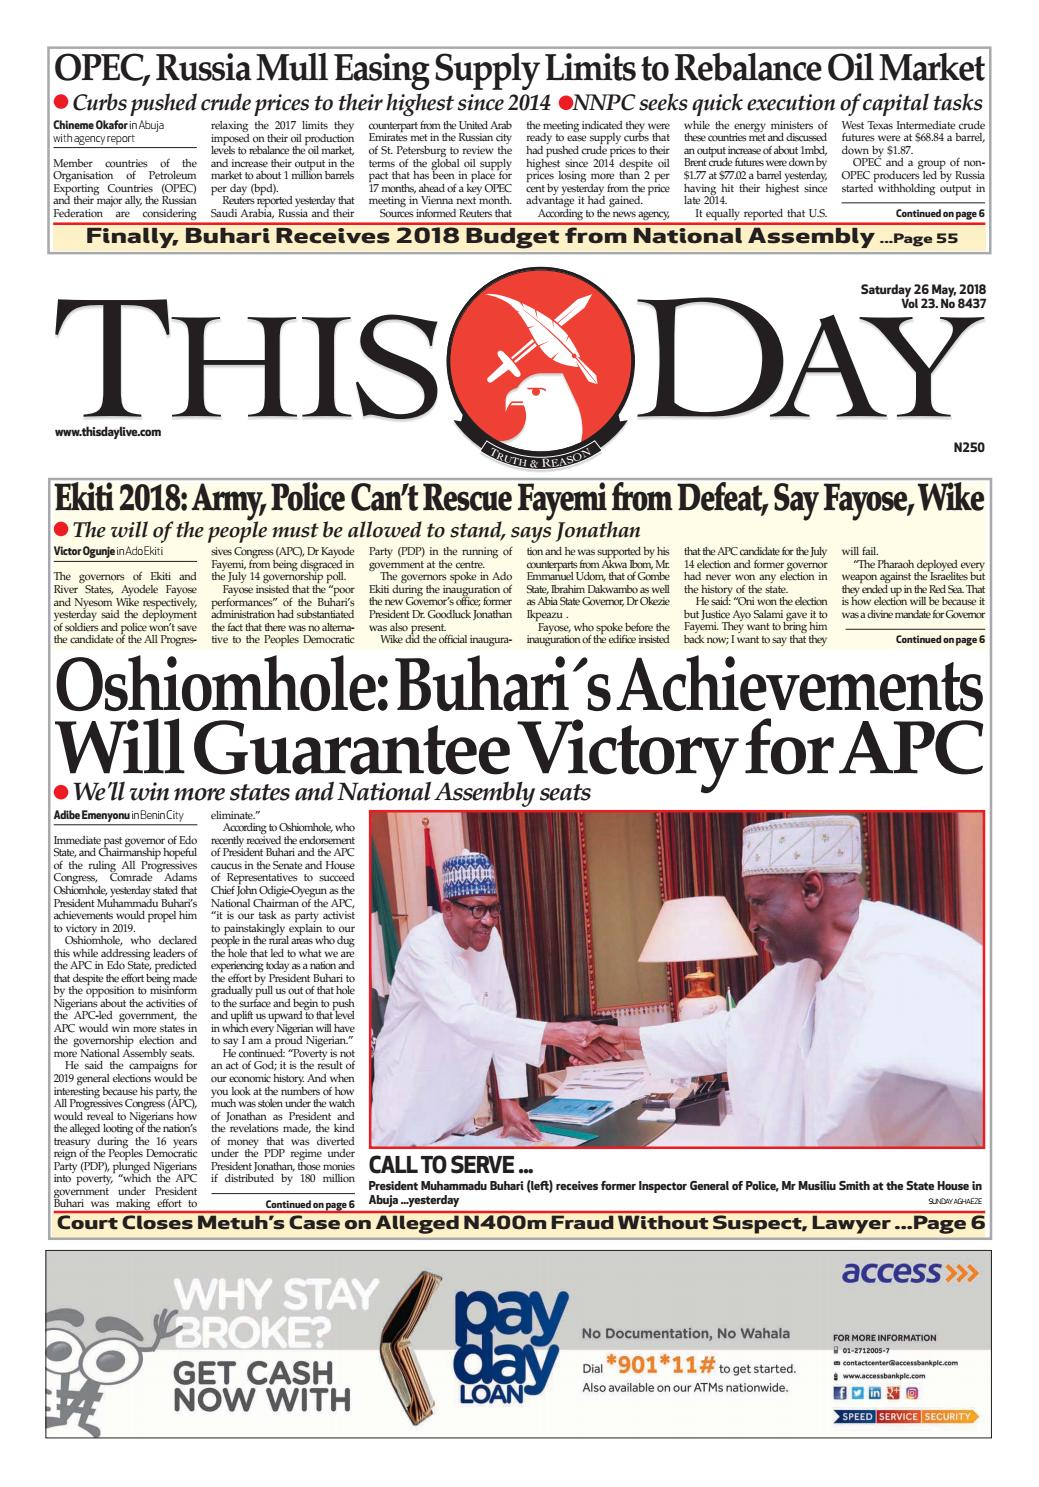 e57003fdbcf Saturday 26th May 2018 by THISDAY Newspapers Ltd - issuu